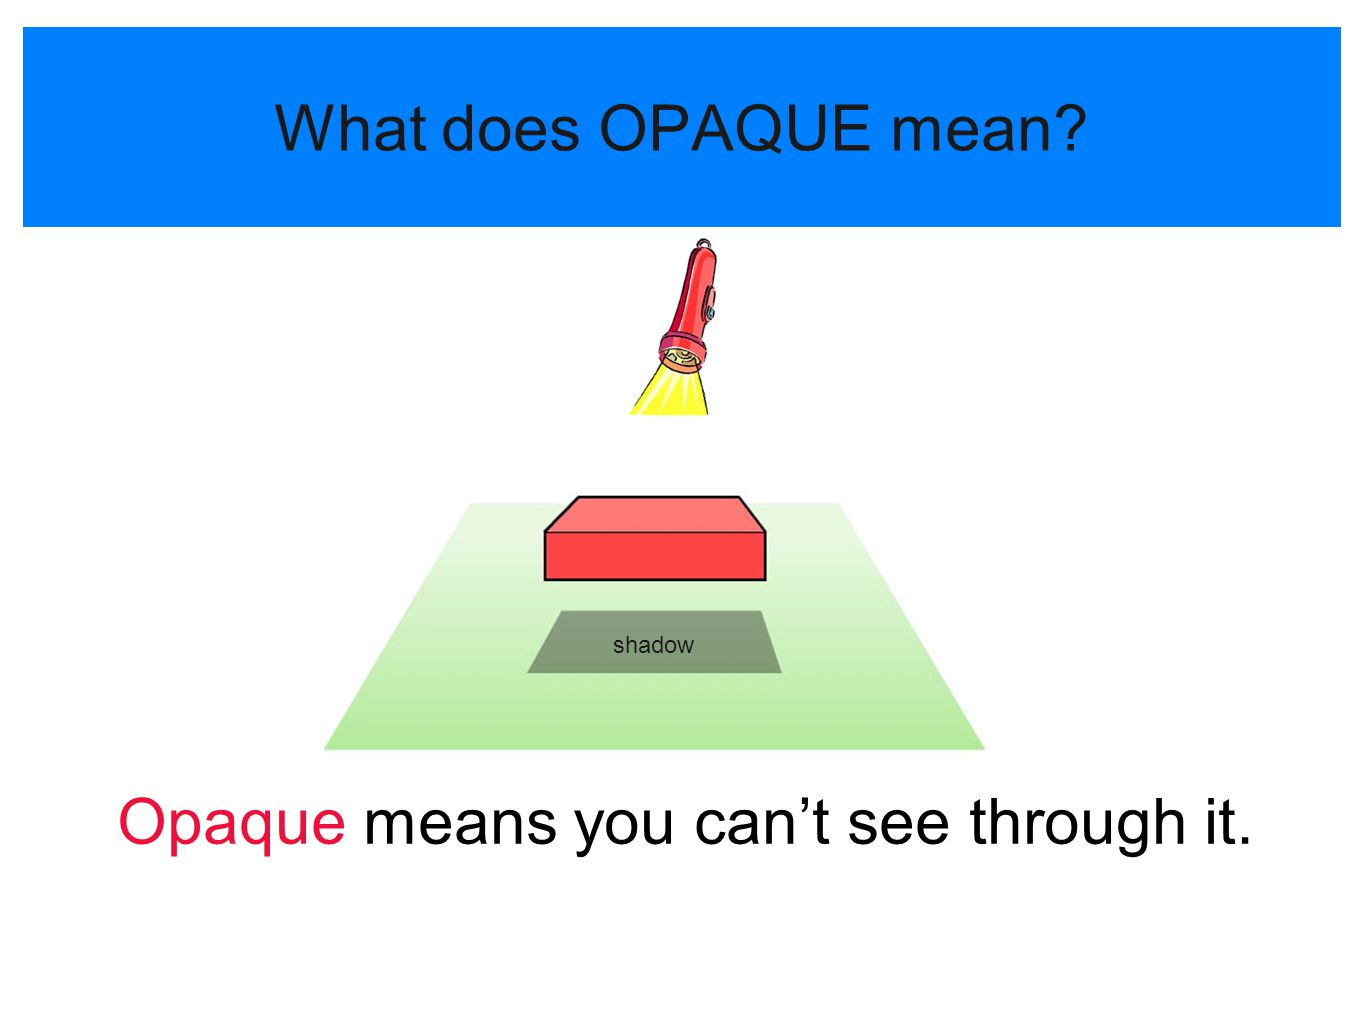 Opaque means you can't see through it.